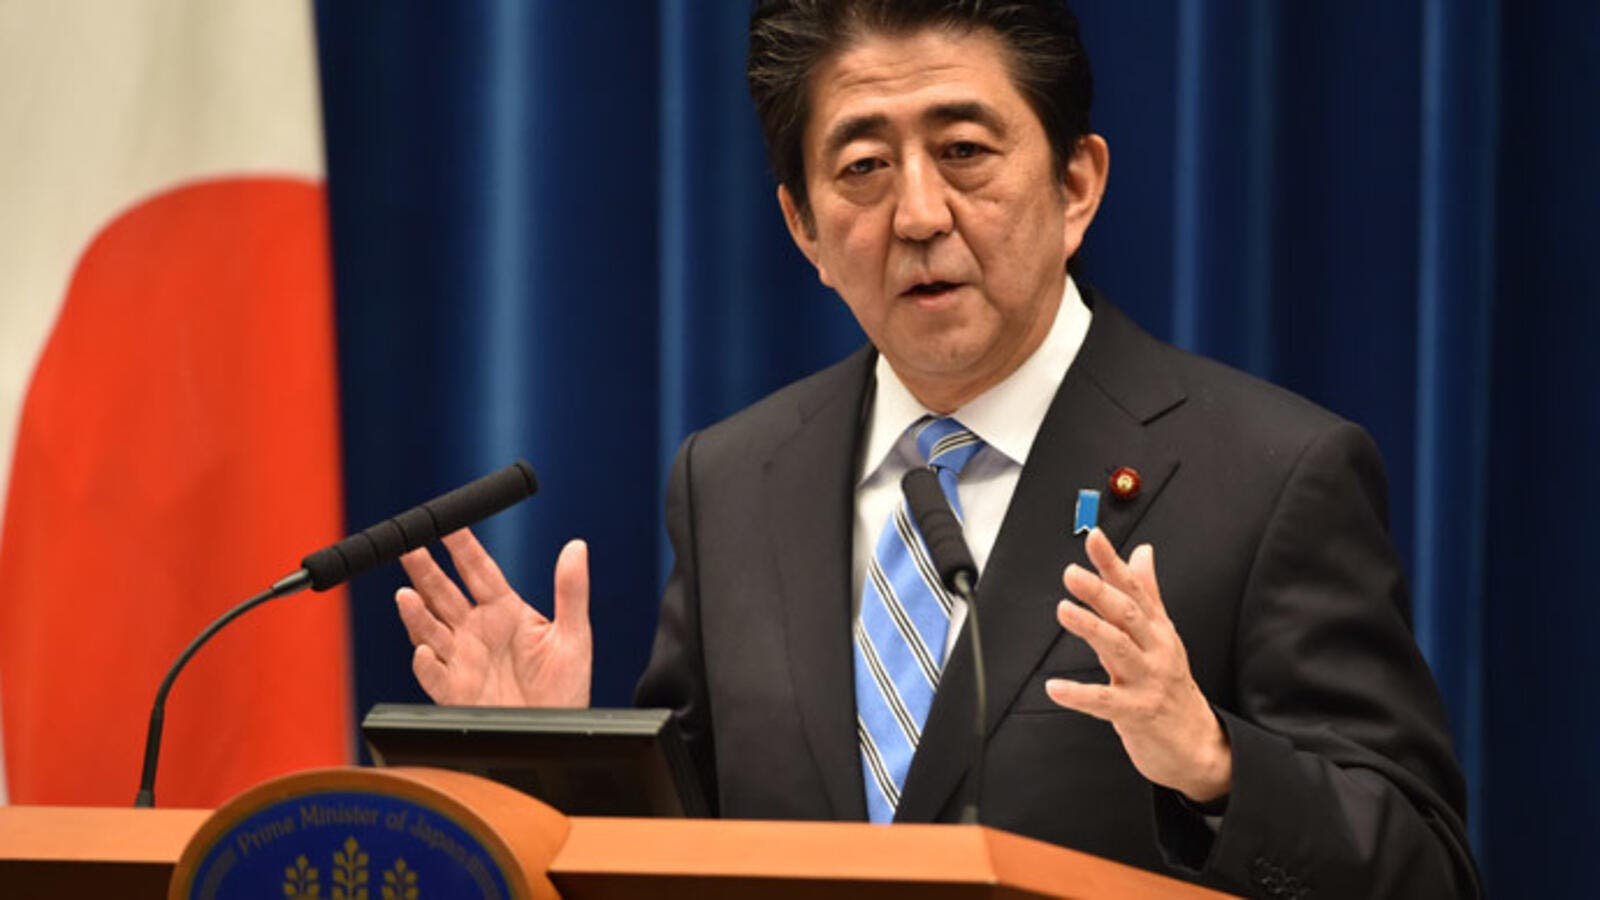 Japanese Prime Minister Shinzo Abe plans to visit Iran in August around the same time as his visit to Kenya. (AFP/File)